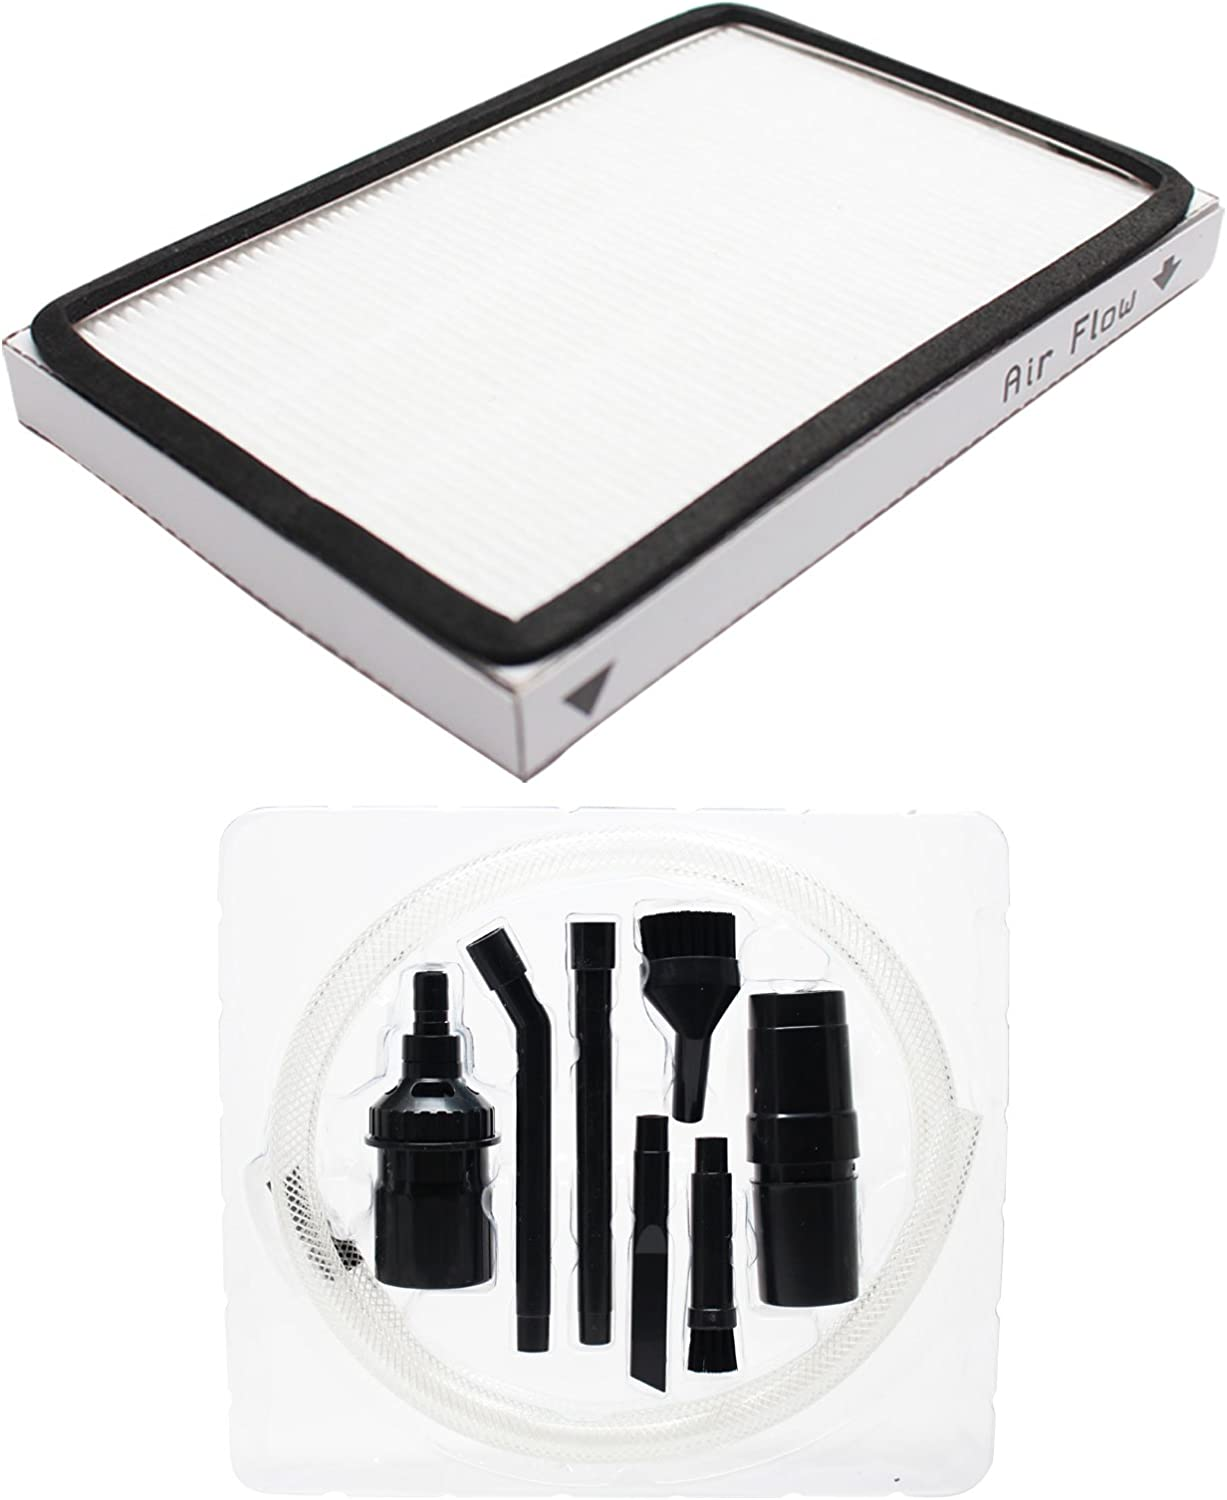 Replacement EF-1 Filter with 1 Micro Vacuum Attachment Kit for Kenmore - Compatible with Kenmore EF-1, Kenmore 86889, Kenmore 11635922500, Kenmore 11635923500, Kenmore 20-86889, Kenmore EF1, Kenmore KC38KCEN1000, Kenmore 11628014700, Kenmore 11628015700, Kenmore 11628614800, Kenmore 11628614801, Kenmore 11628614803, Kenmore 11628615800, Kenmore 11628615801